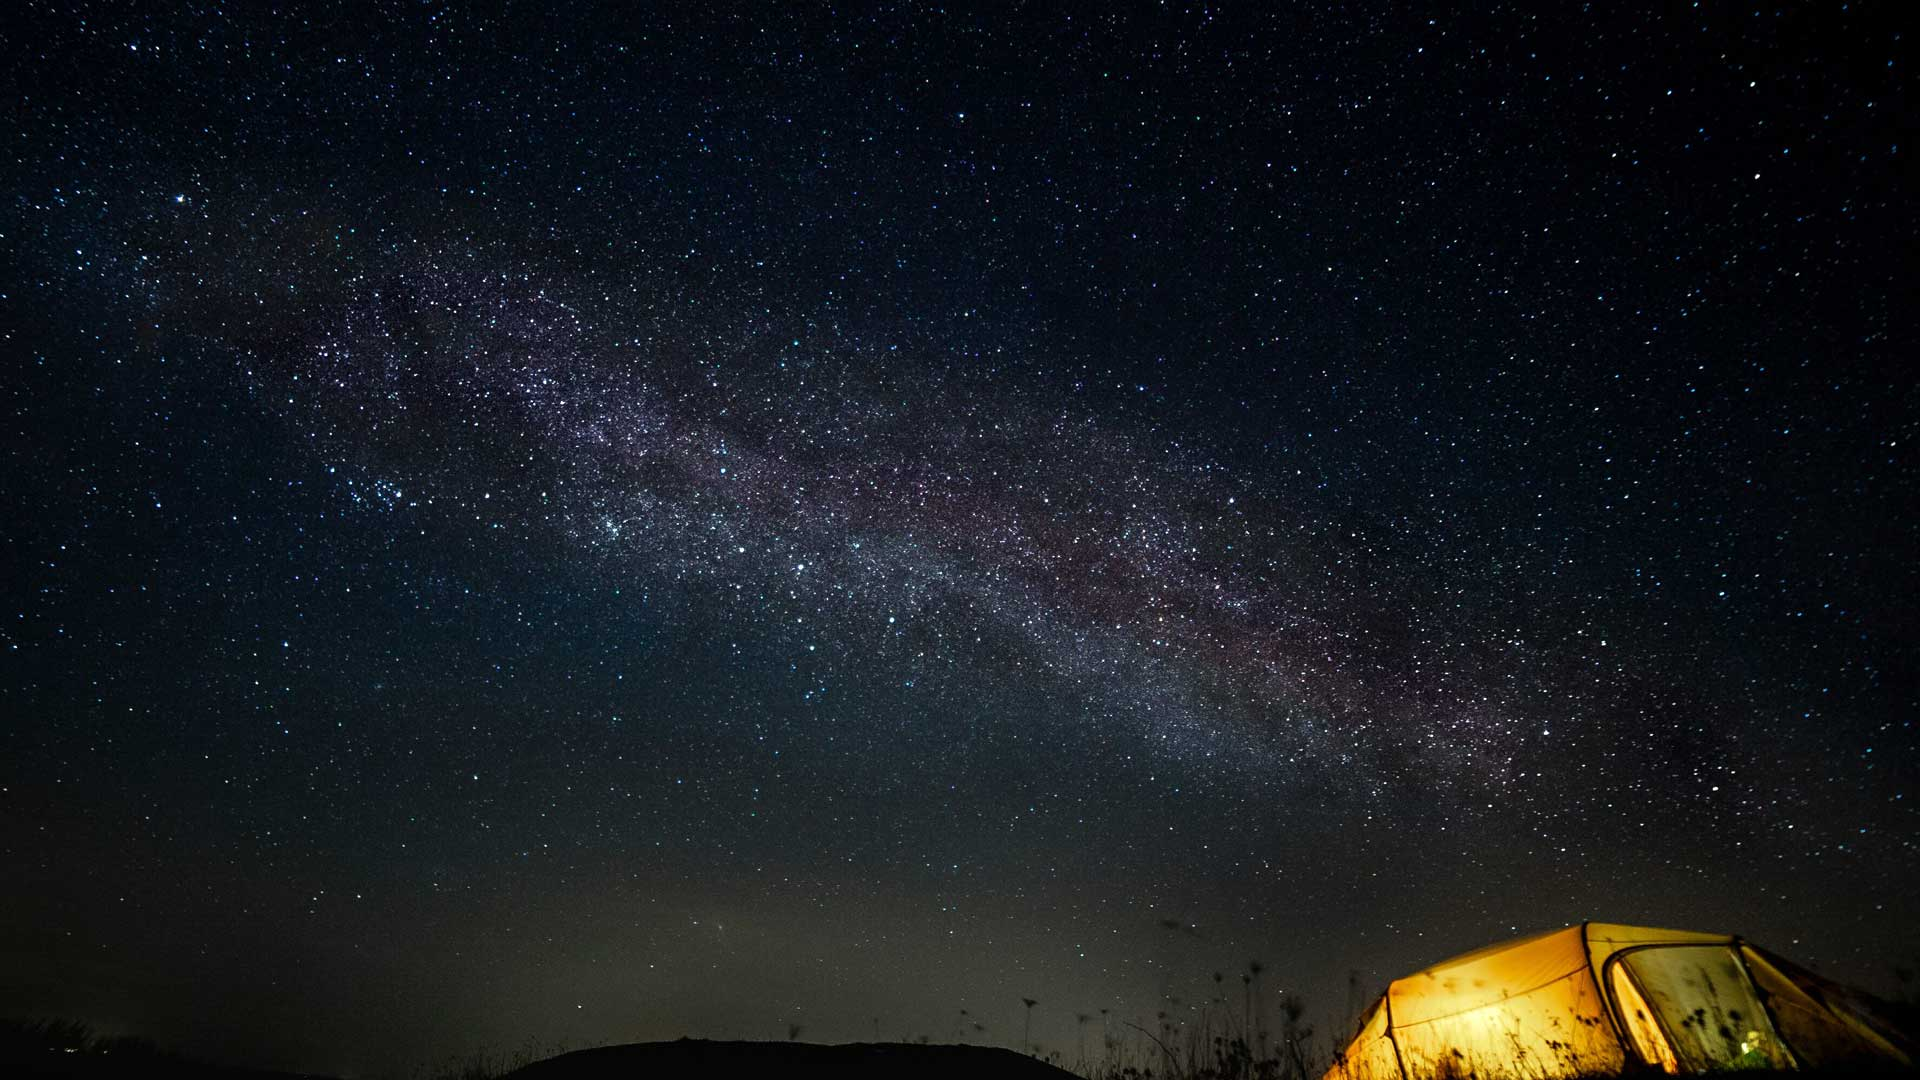 Stargazing at Camp Møns Klint in Denmark